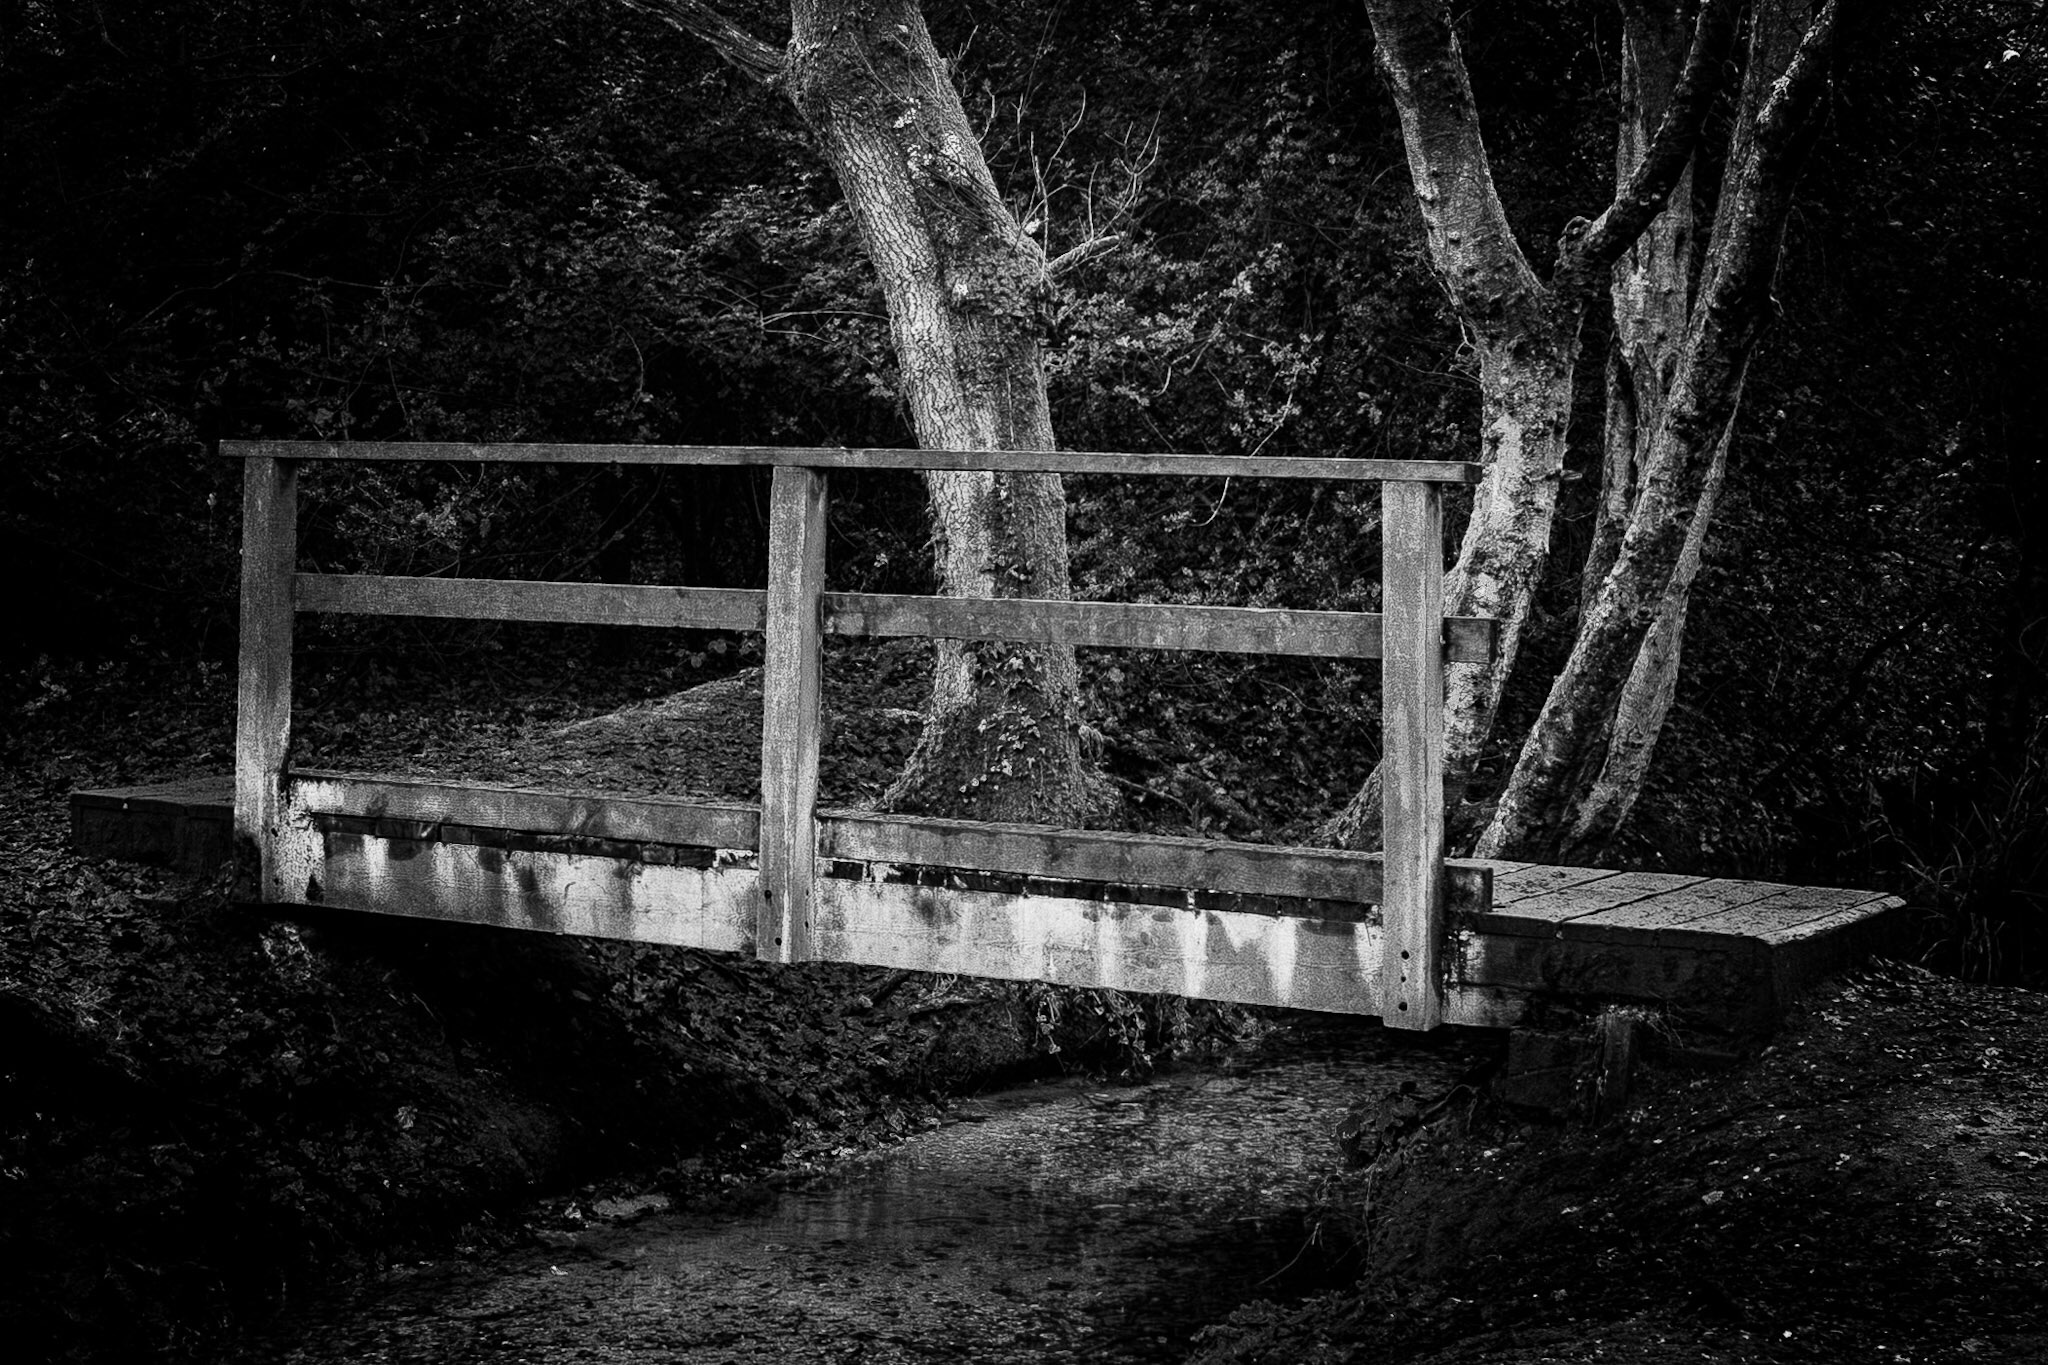 Crop of the picture of the bridge in Delph Woods, Poole, Dorset